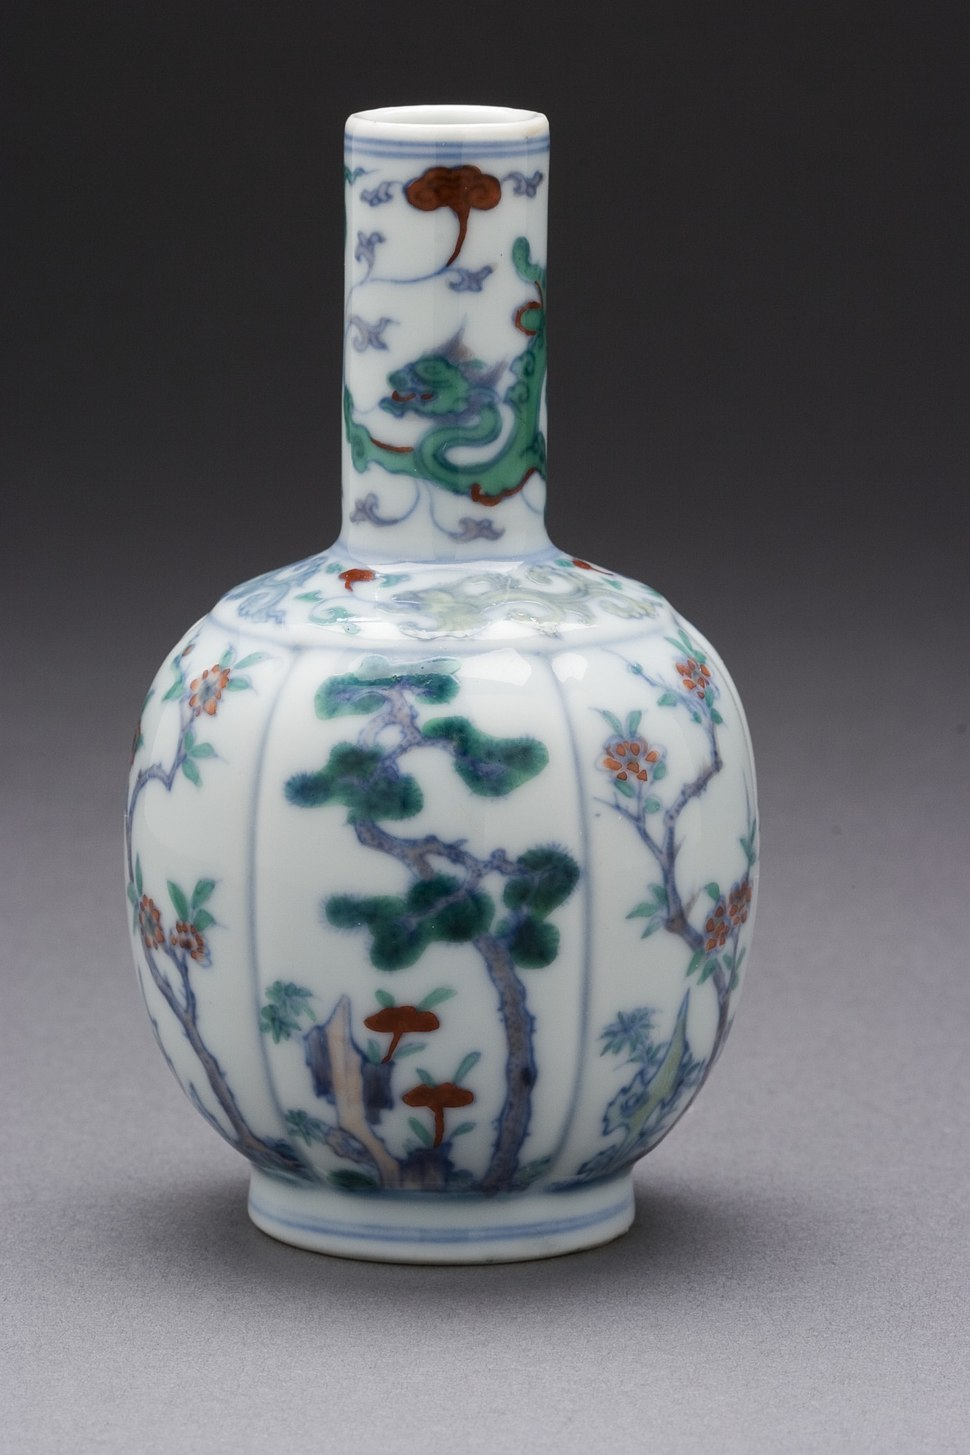 Vase (Ping) in the Form of a Mellon with Pine, Bamboo, Plum, Camellia, and Dragon LACMA M.71.65.8